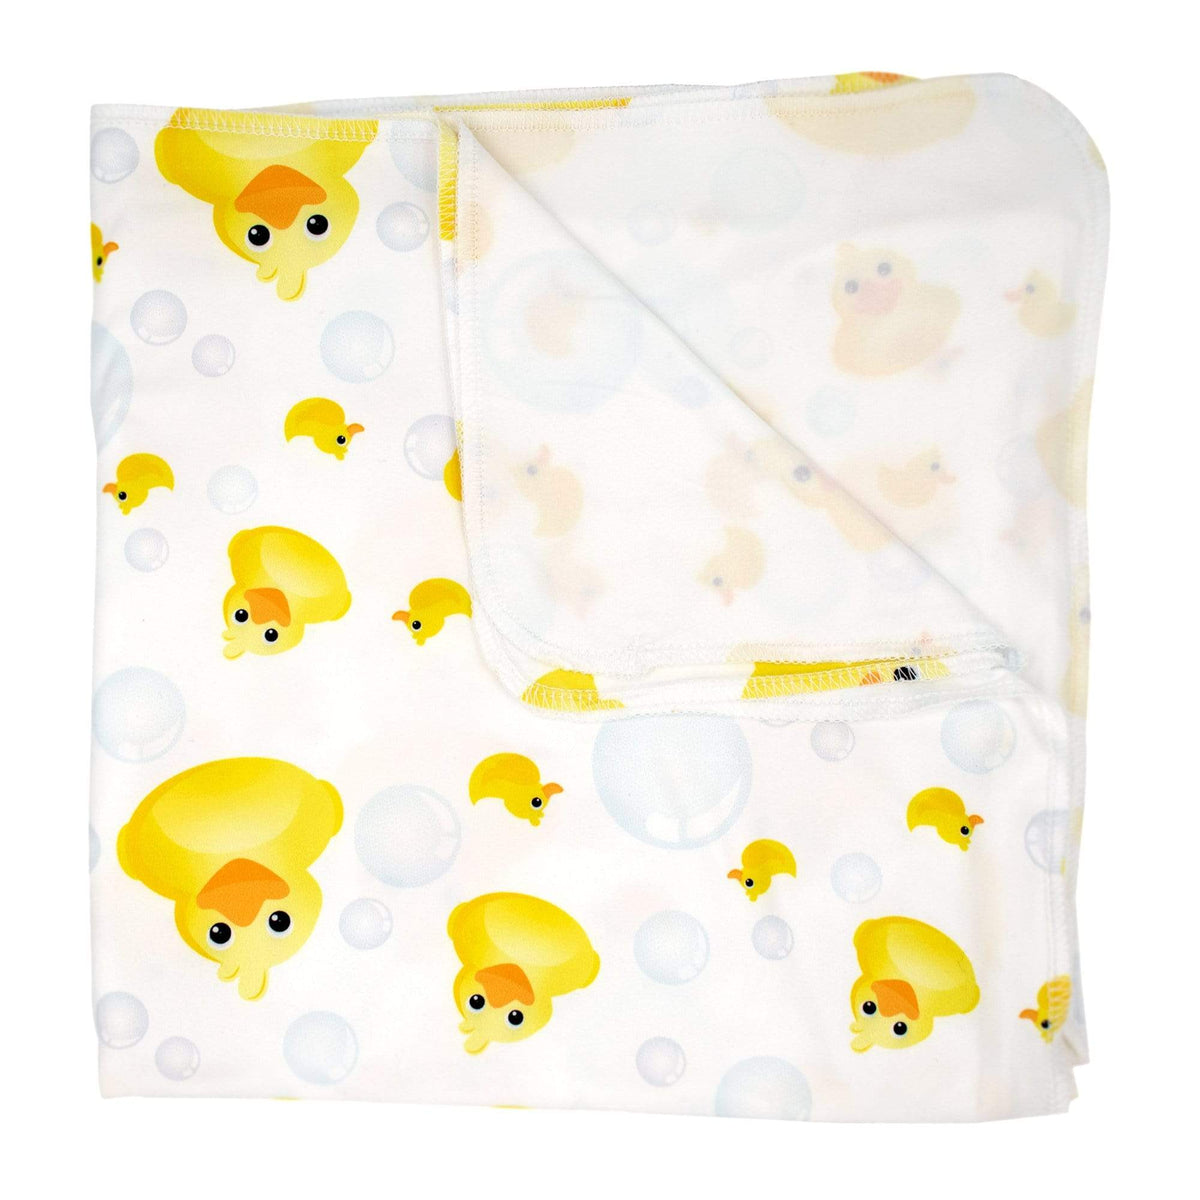 Imagine Stretchy Swaddle Blanket - Splish Splash